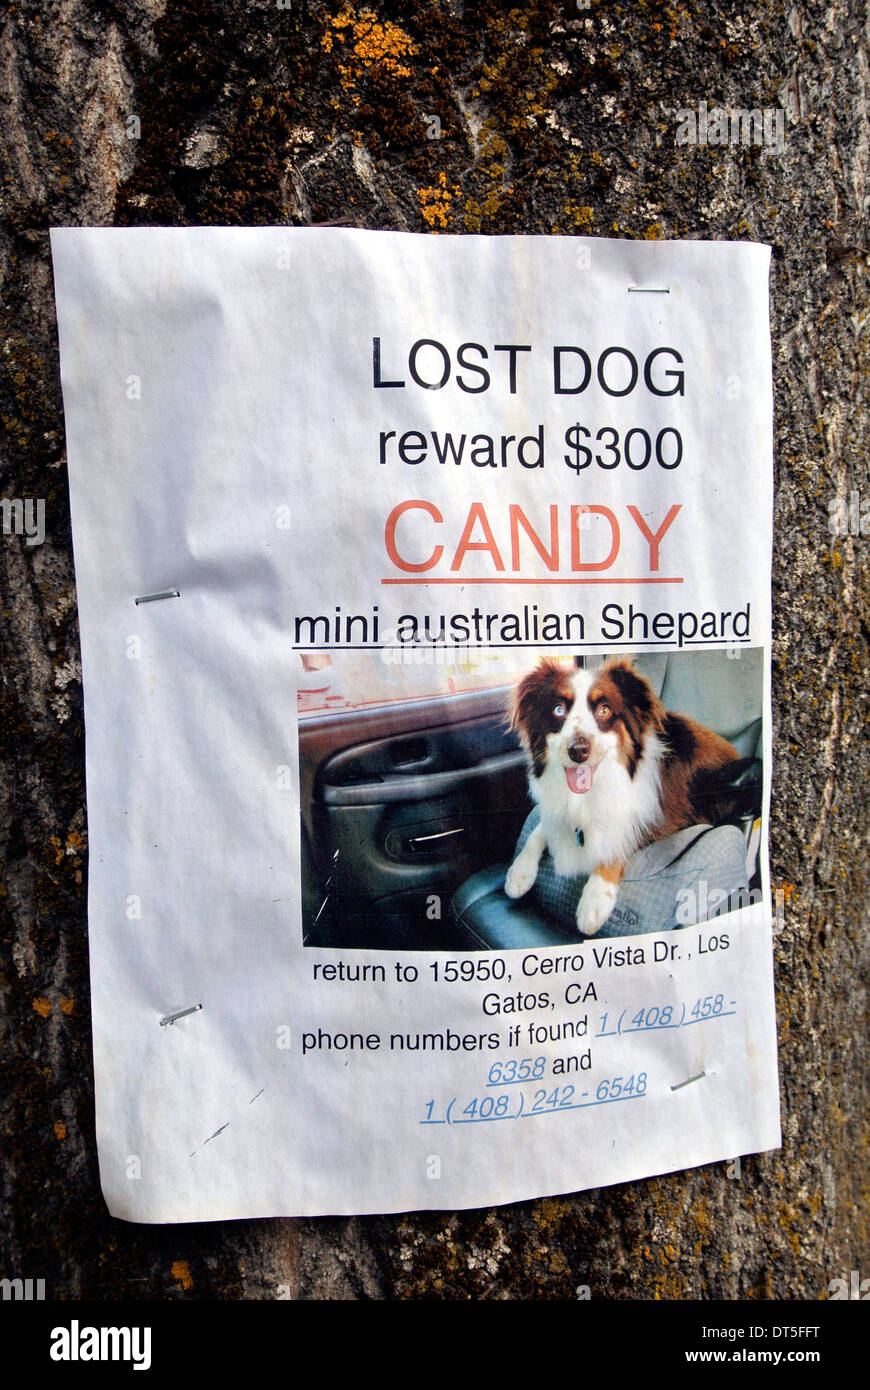 sign posted on tree offering a $300 reward for a lost mini australian shepard dog - Stock Image